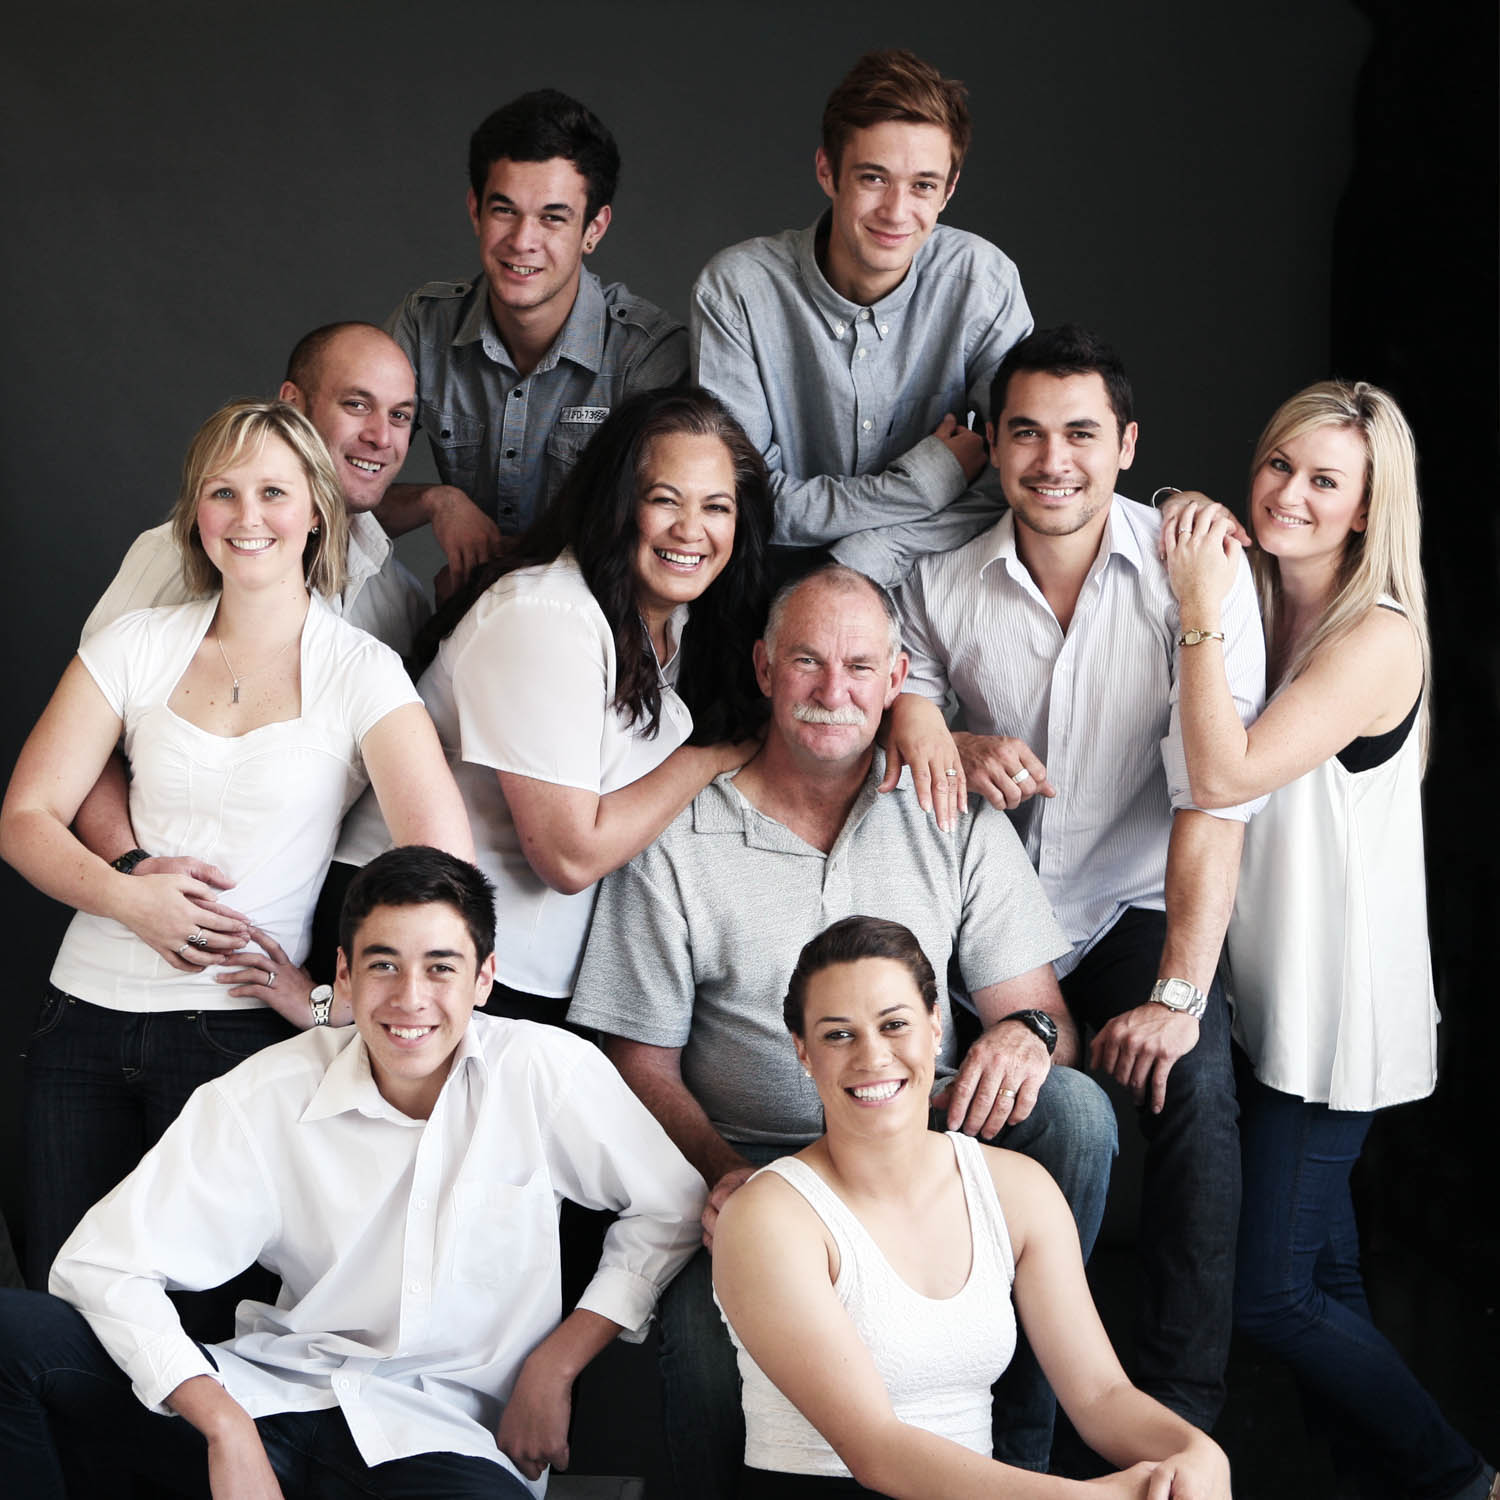 Family_Photographer_Auckland_13180_8430.jpg